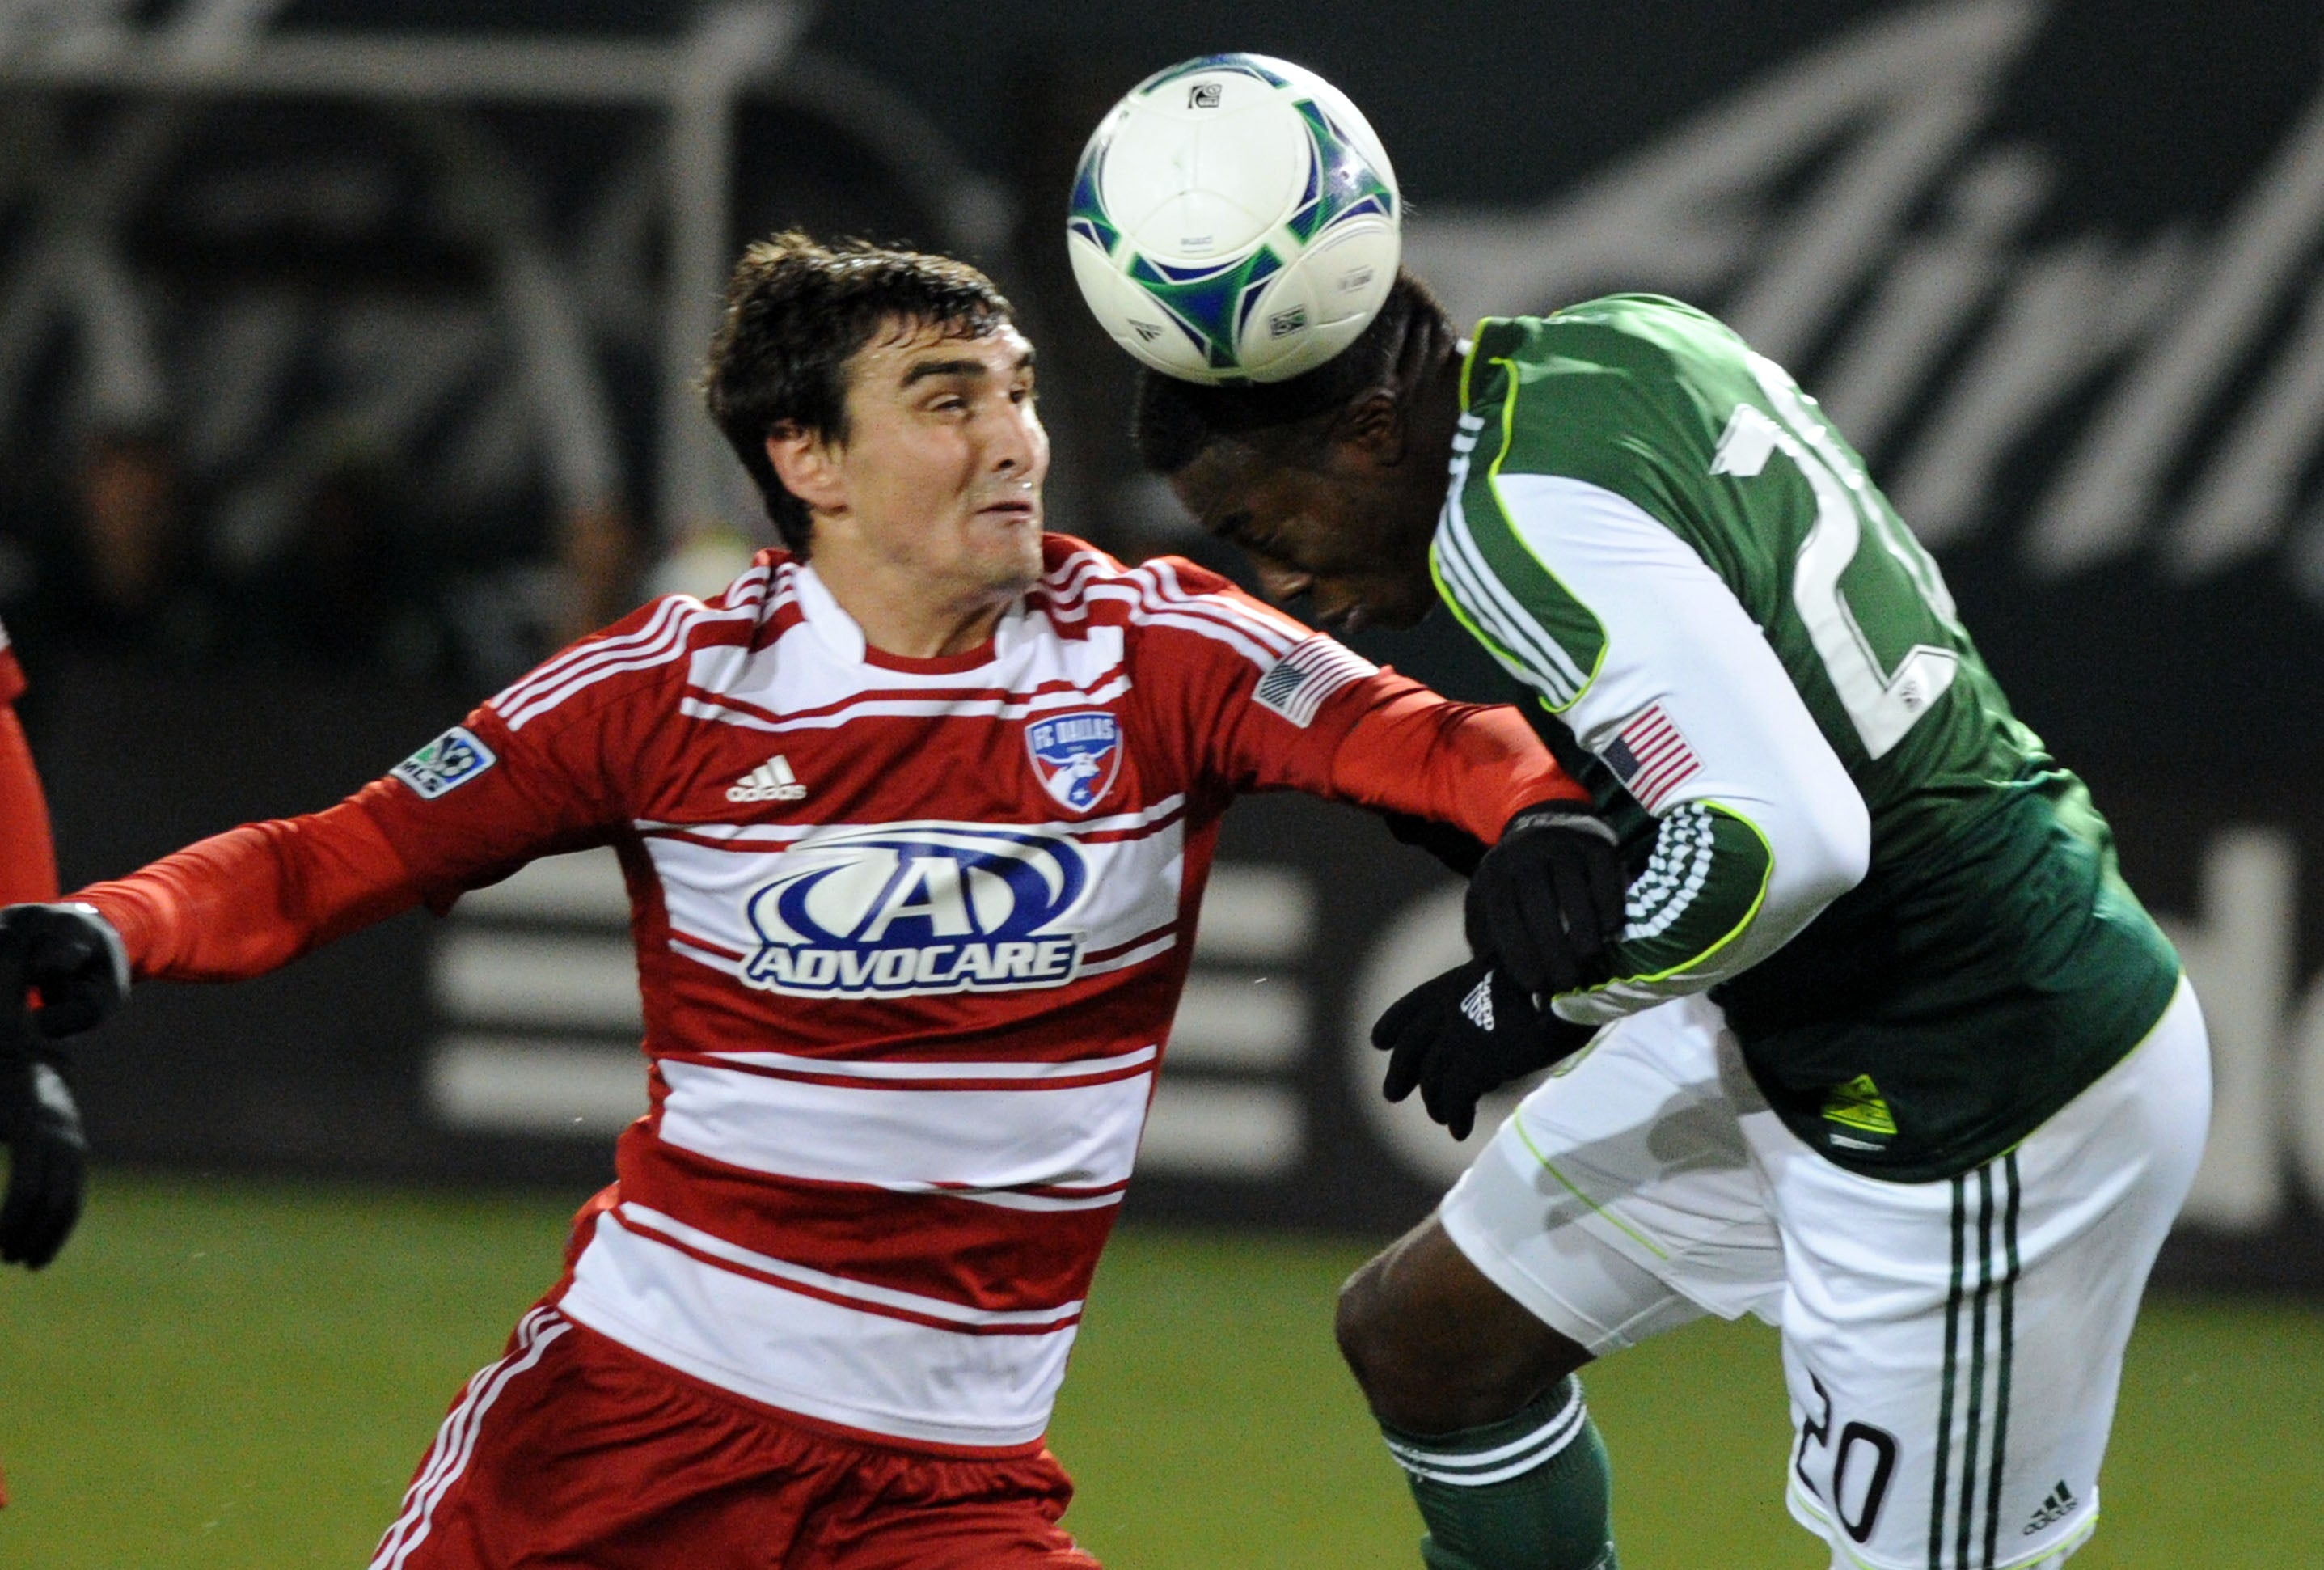 Reading Deadspin? Allow A Former MLS Player To Convince You Otherwise